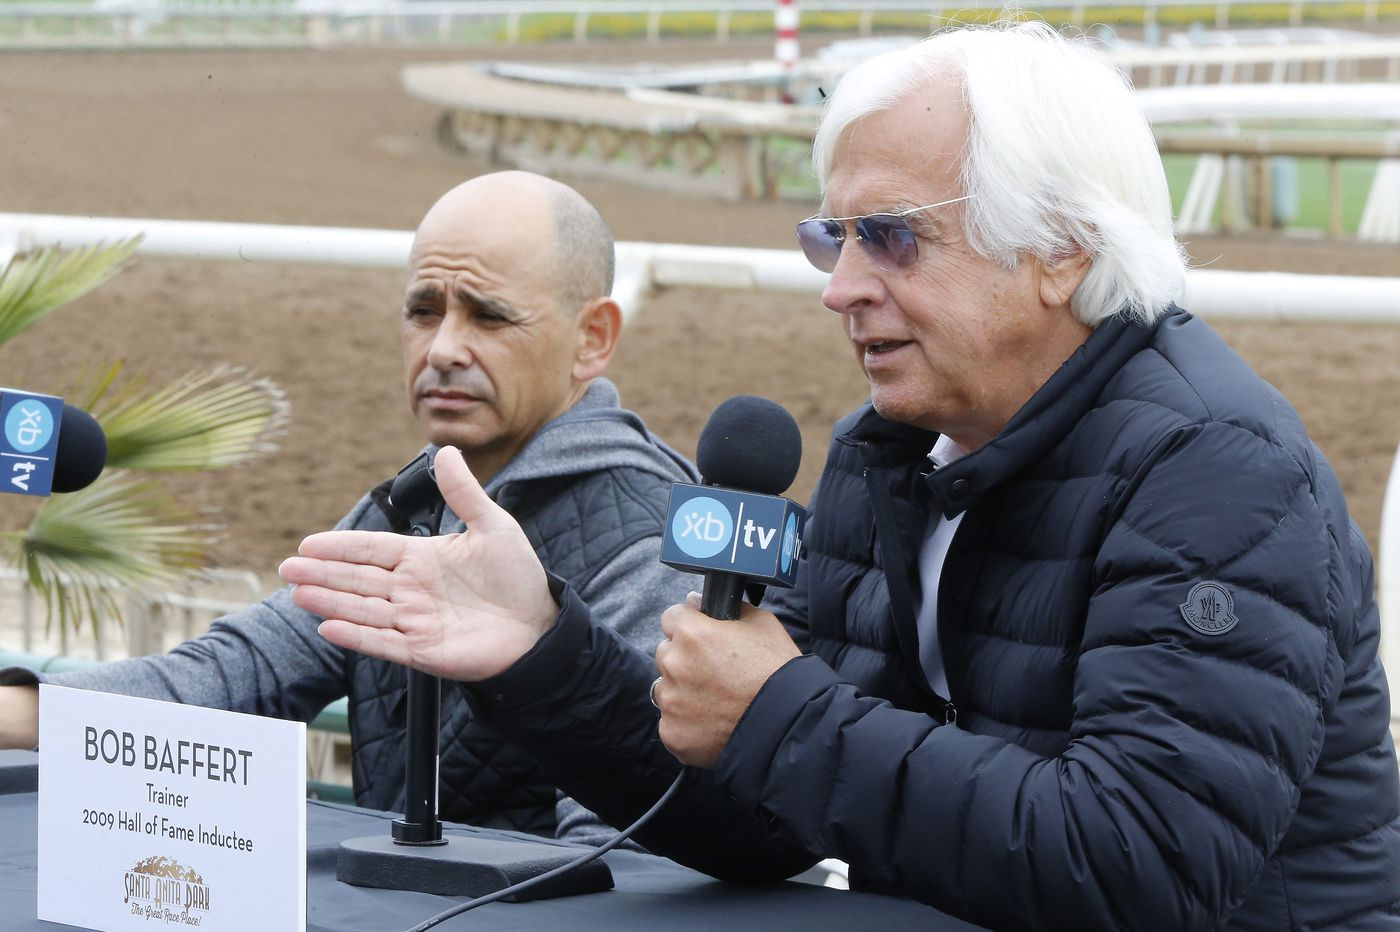 Will Bob Baffert and Mike Smith take center stage again on Belmont Stakes day?